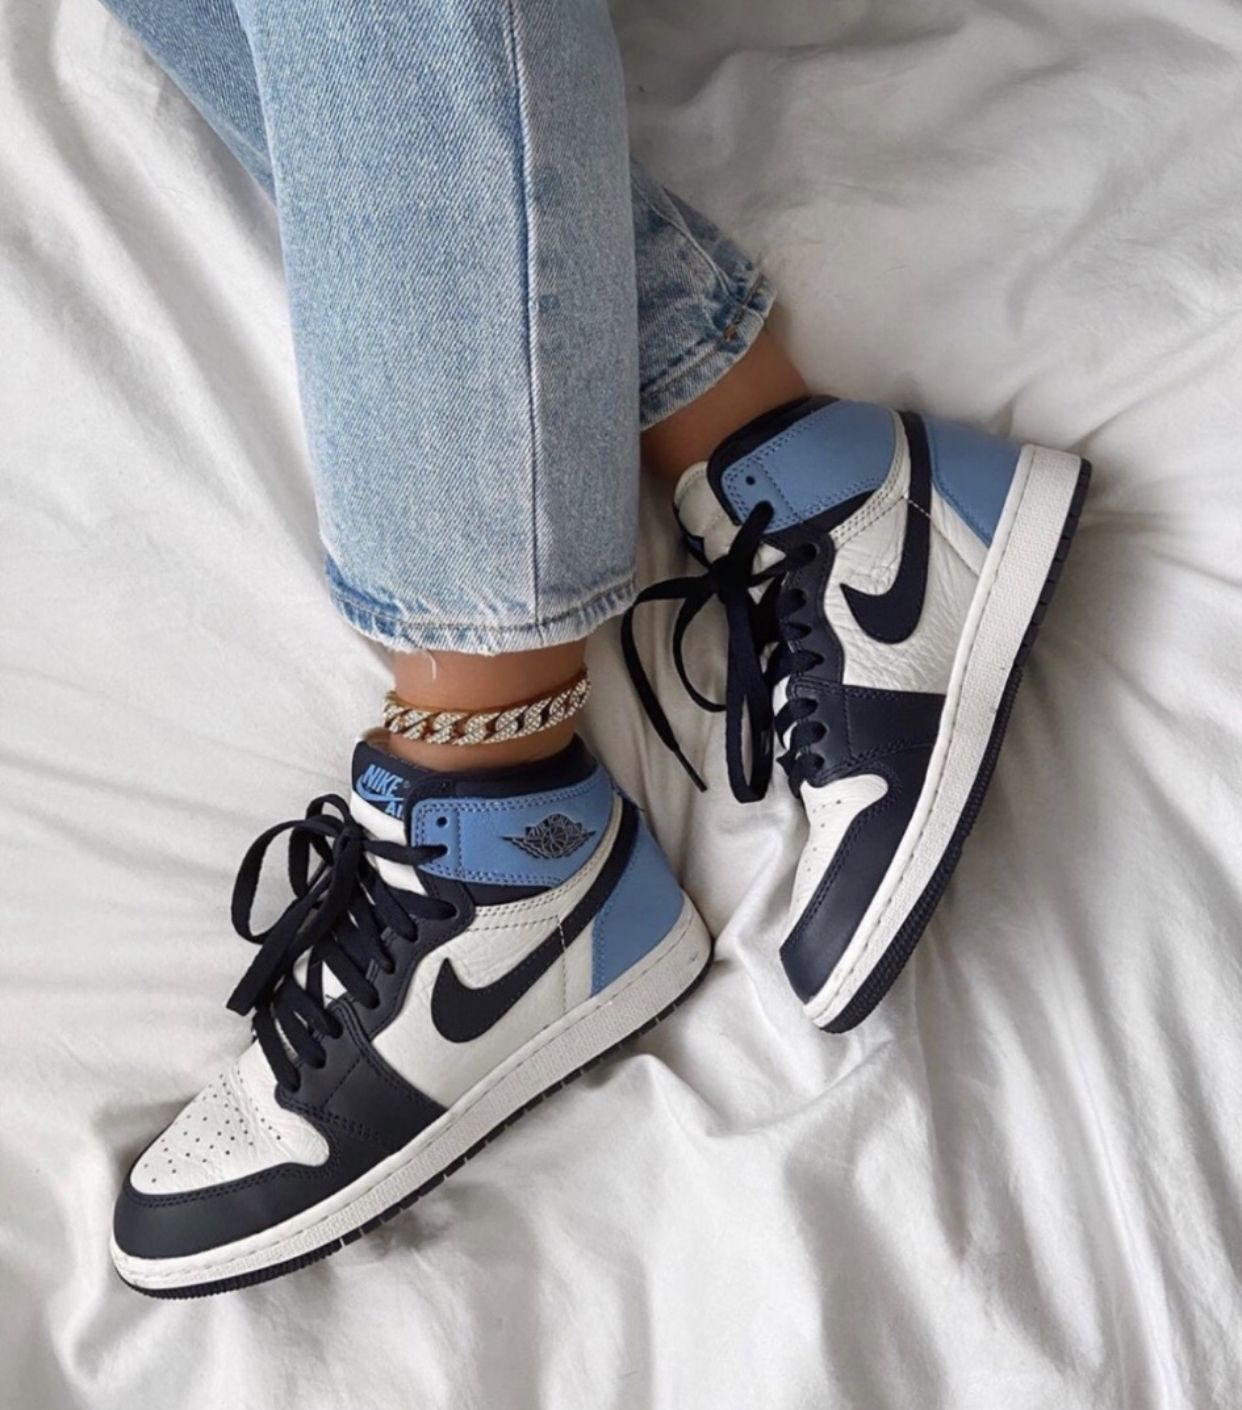 Pin by lukkii on Shoes | Jordan shoes girls, Fresh shoes ...